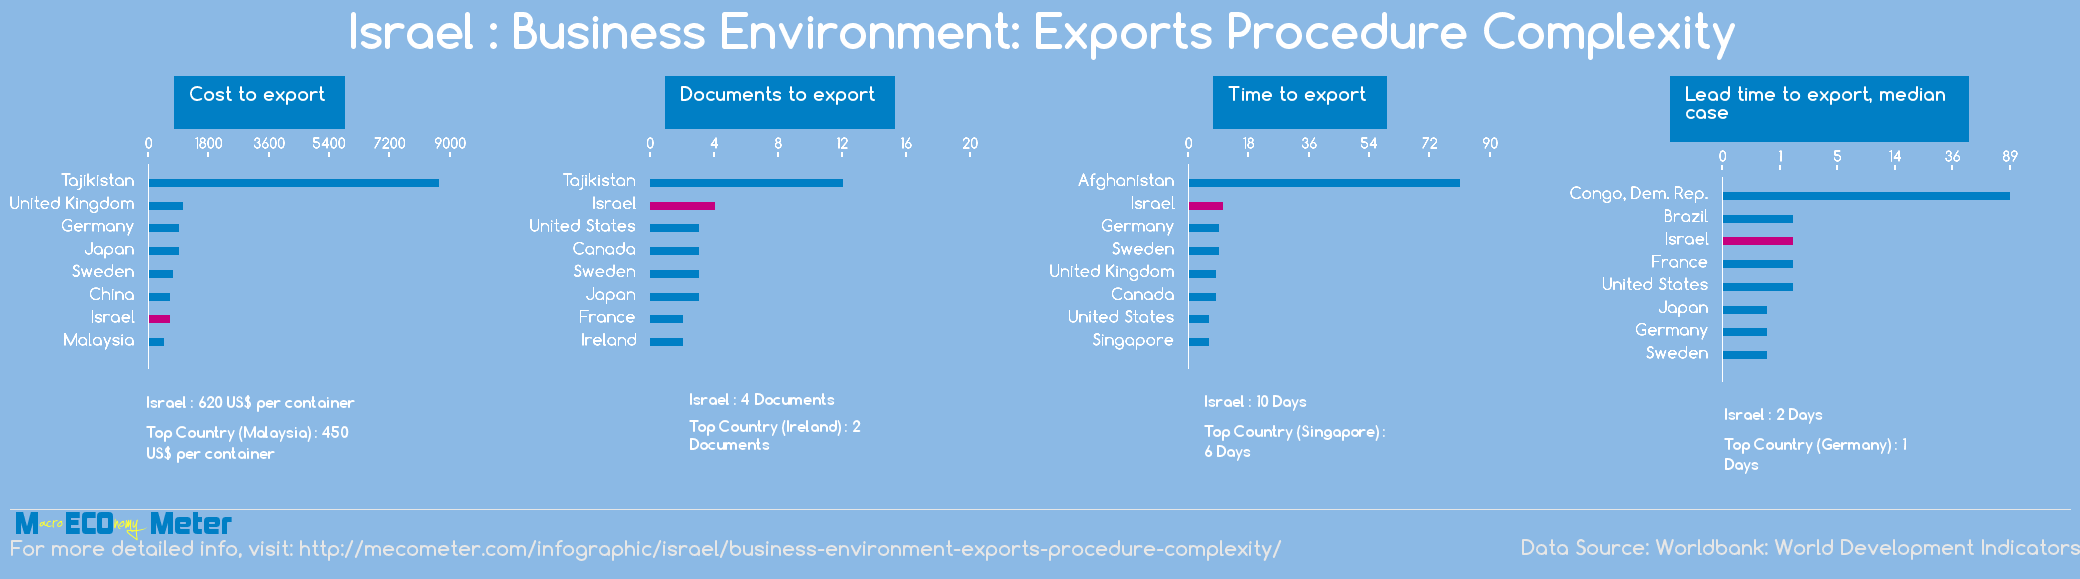 Israel : Business Environment: Exports Procedure Complexity